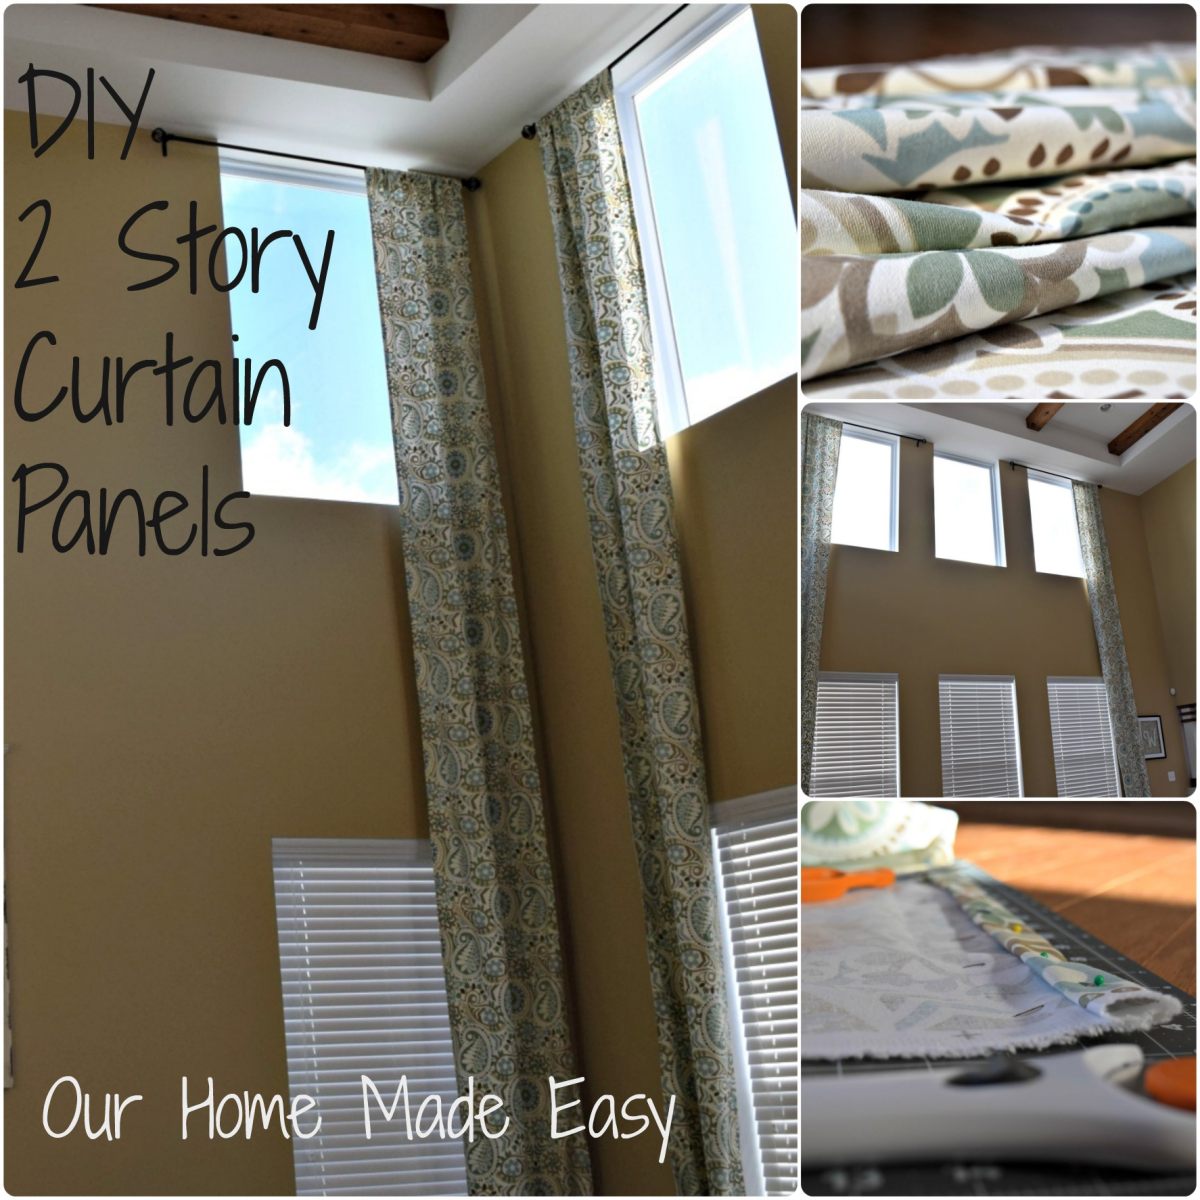 Easy Diy Two Story Curtain Panels In Only 5 Steps Long Curtains